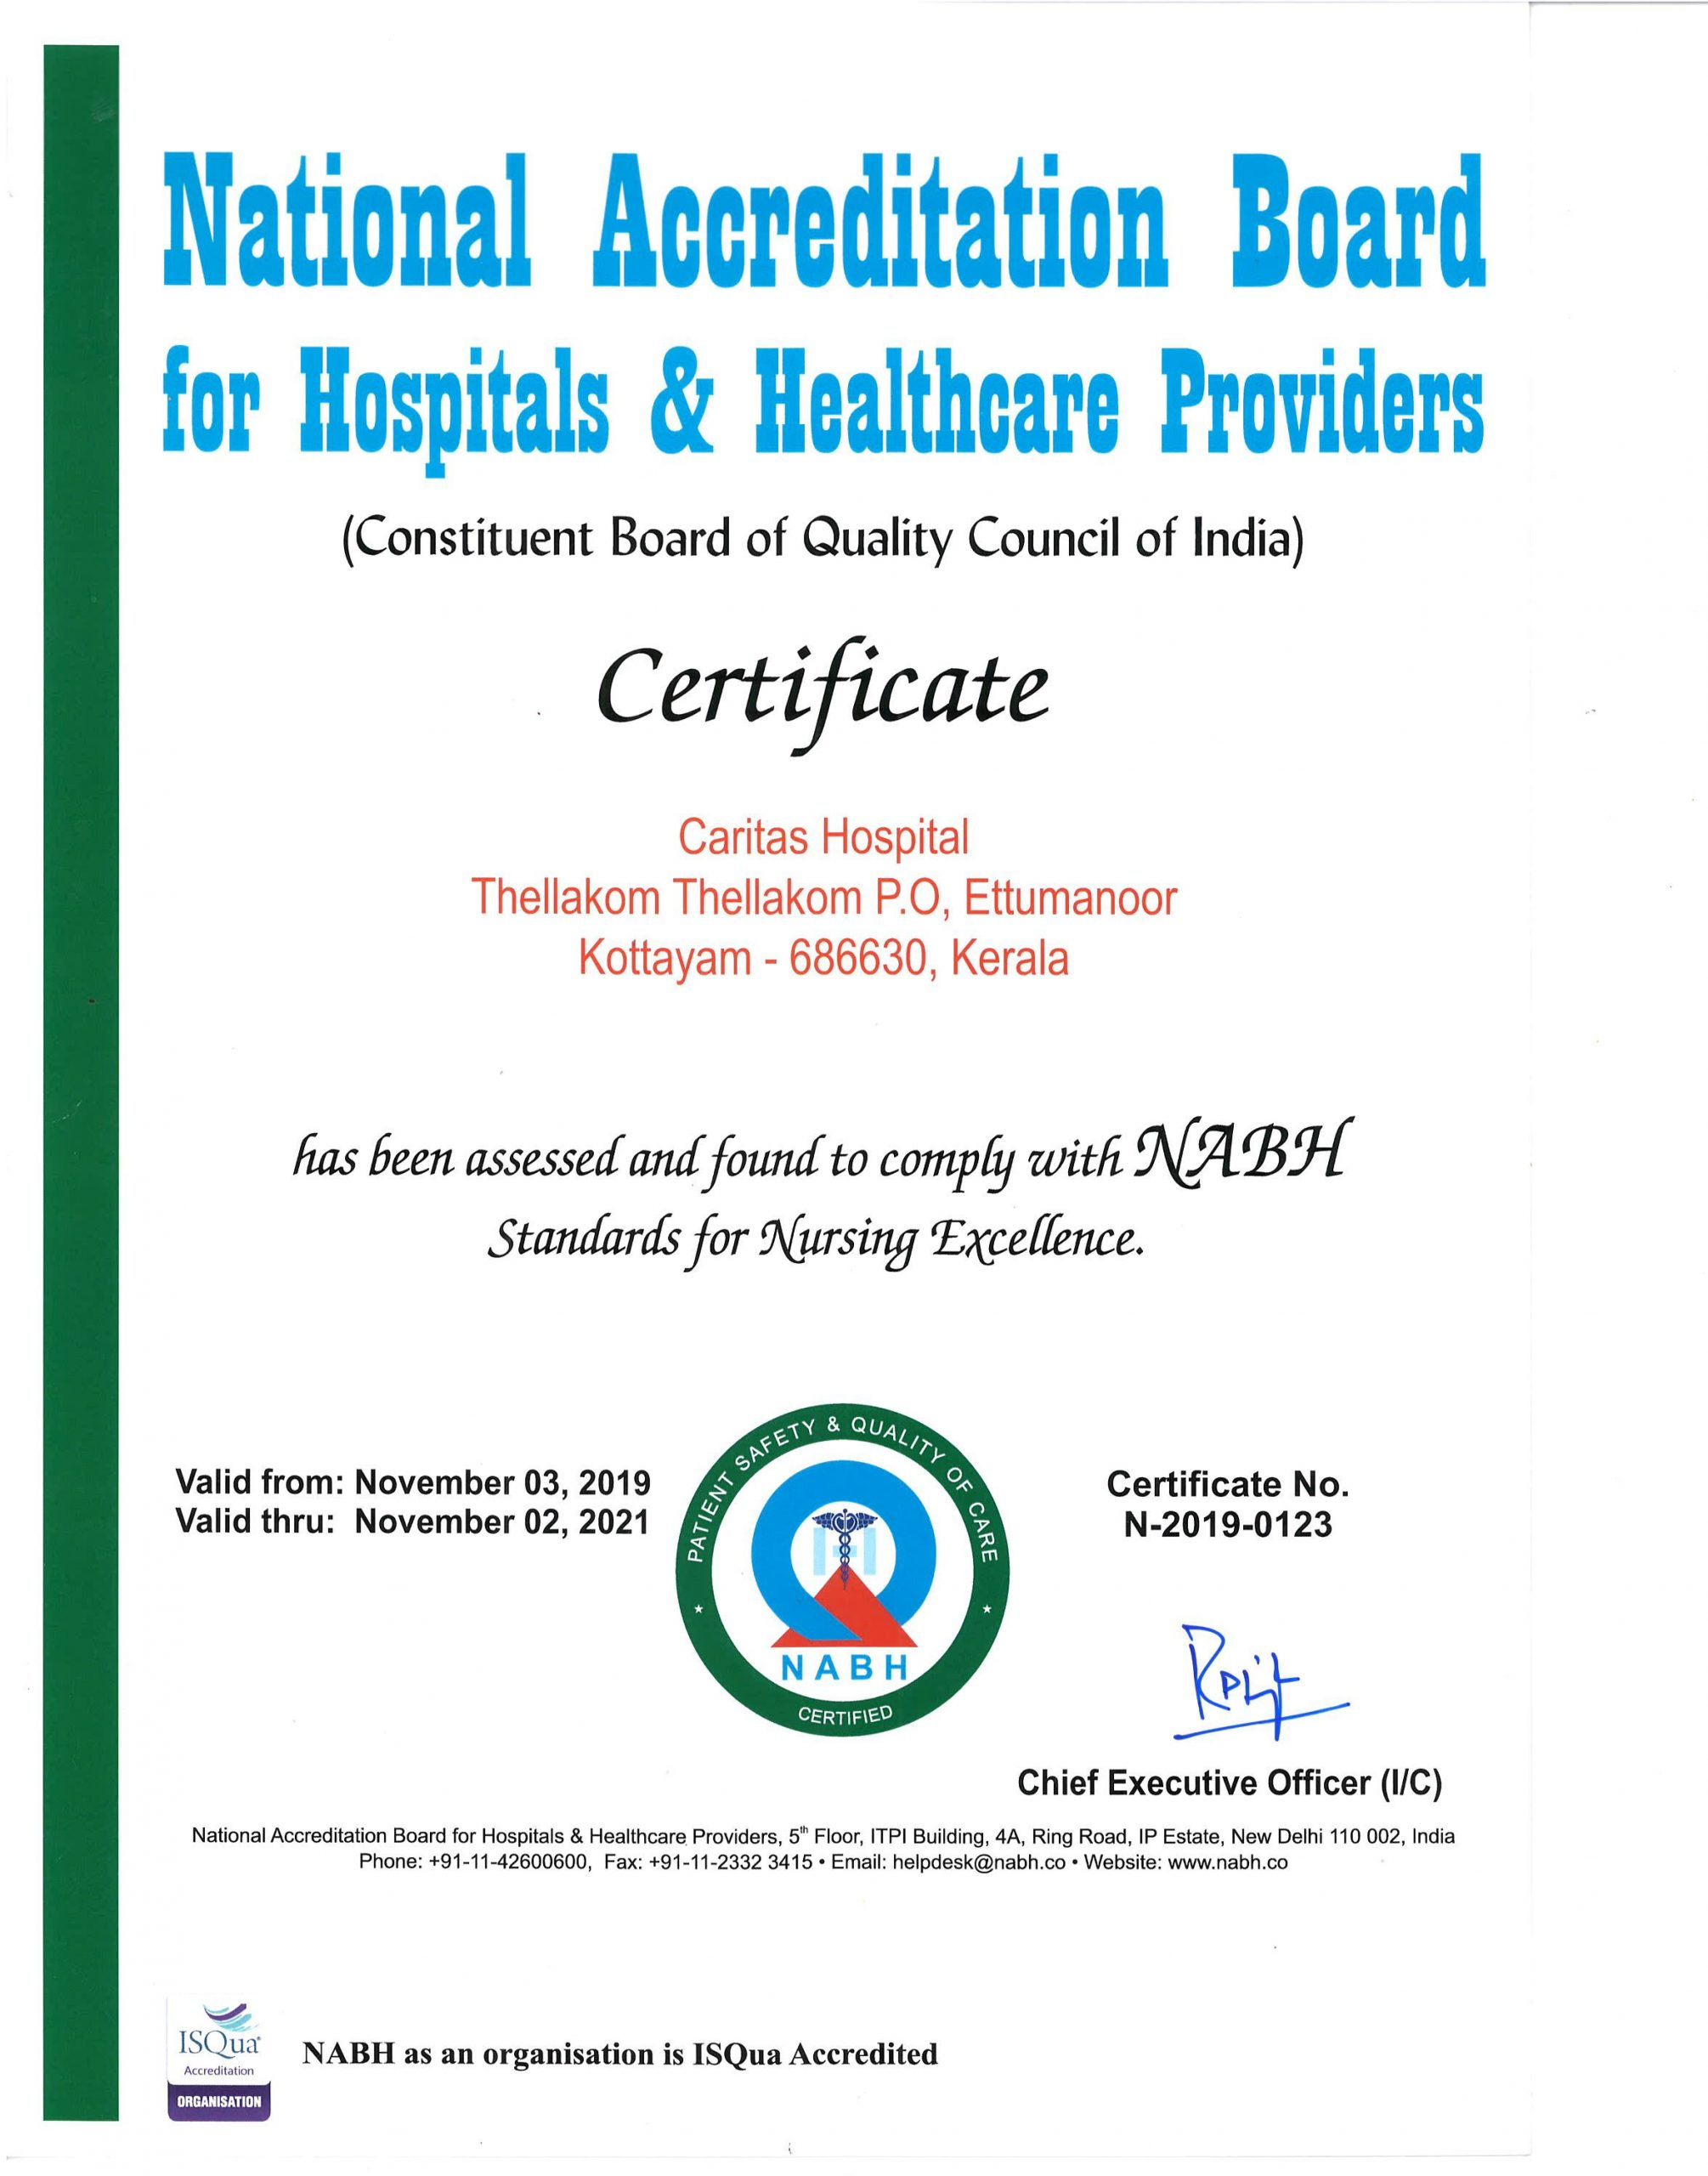 NABH Nursing Excellence Certificate